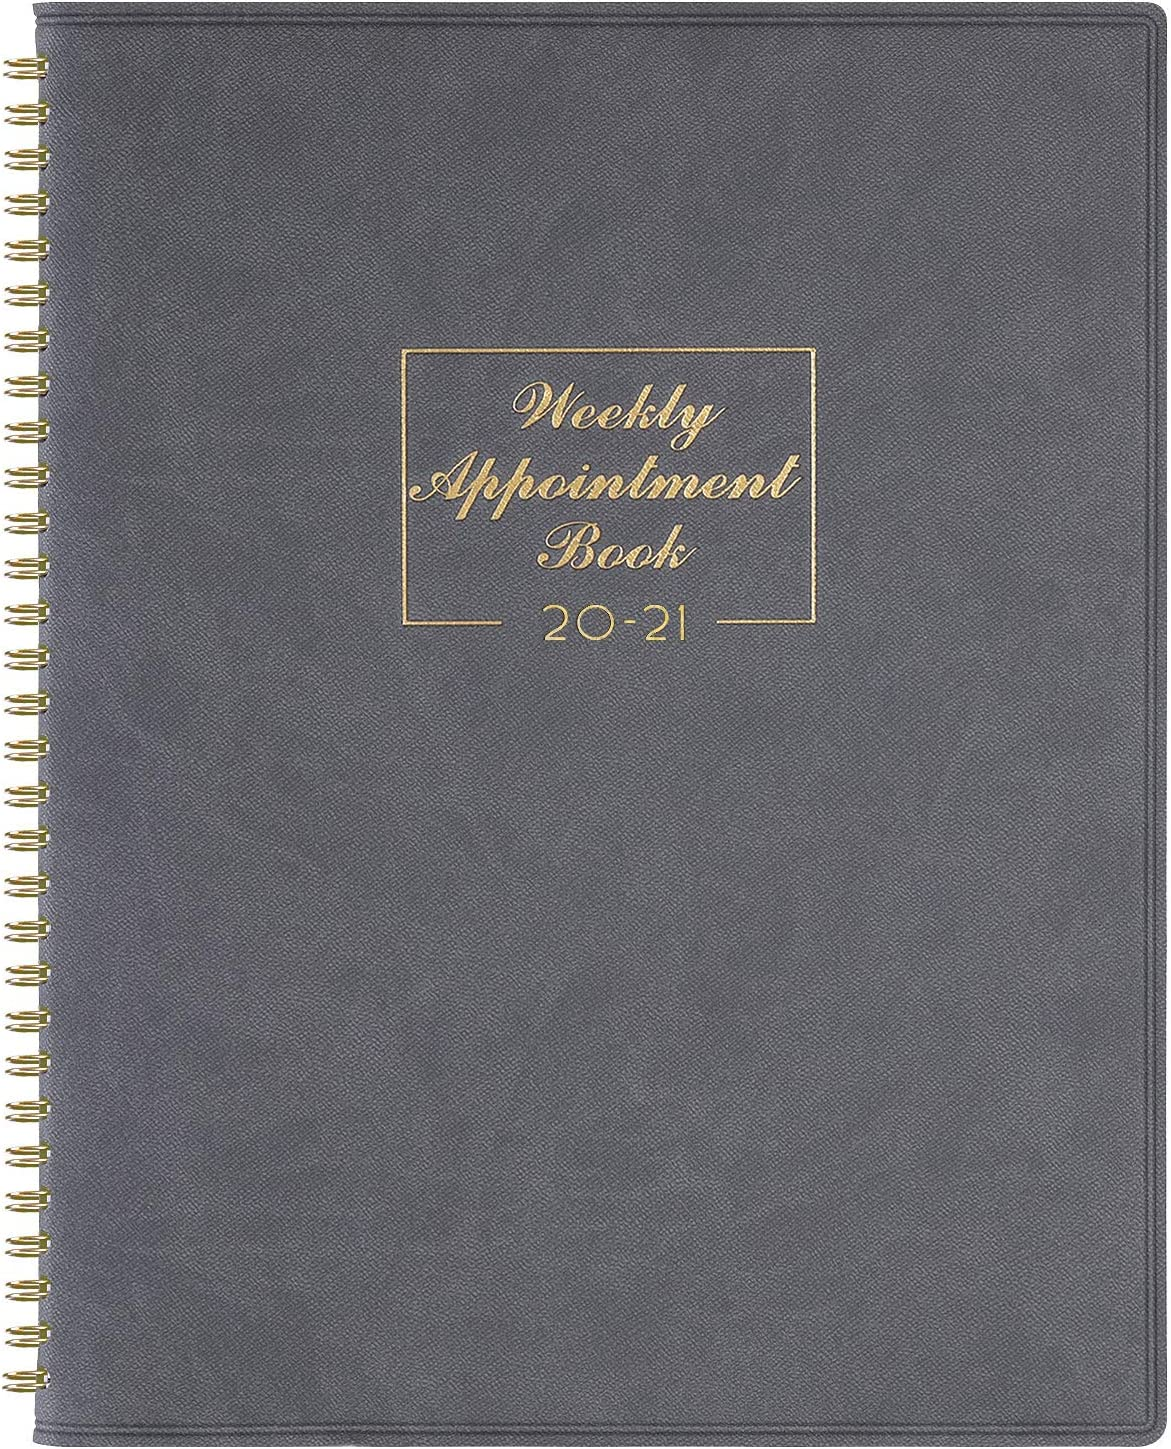 """2020-2021 Weekly Appointment Book & Planner - 2020-2021 Daily Hourly Planner 8.4"""" x 10.6"""", July 2020 - June 2021, 15-Minute Interval, Flexible Soft Cover, Twin-Wire Binding, Perfect for Your Life"""